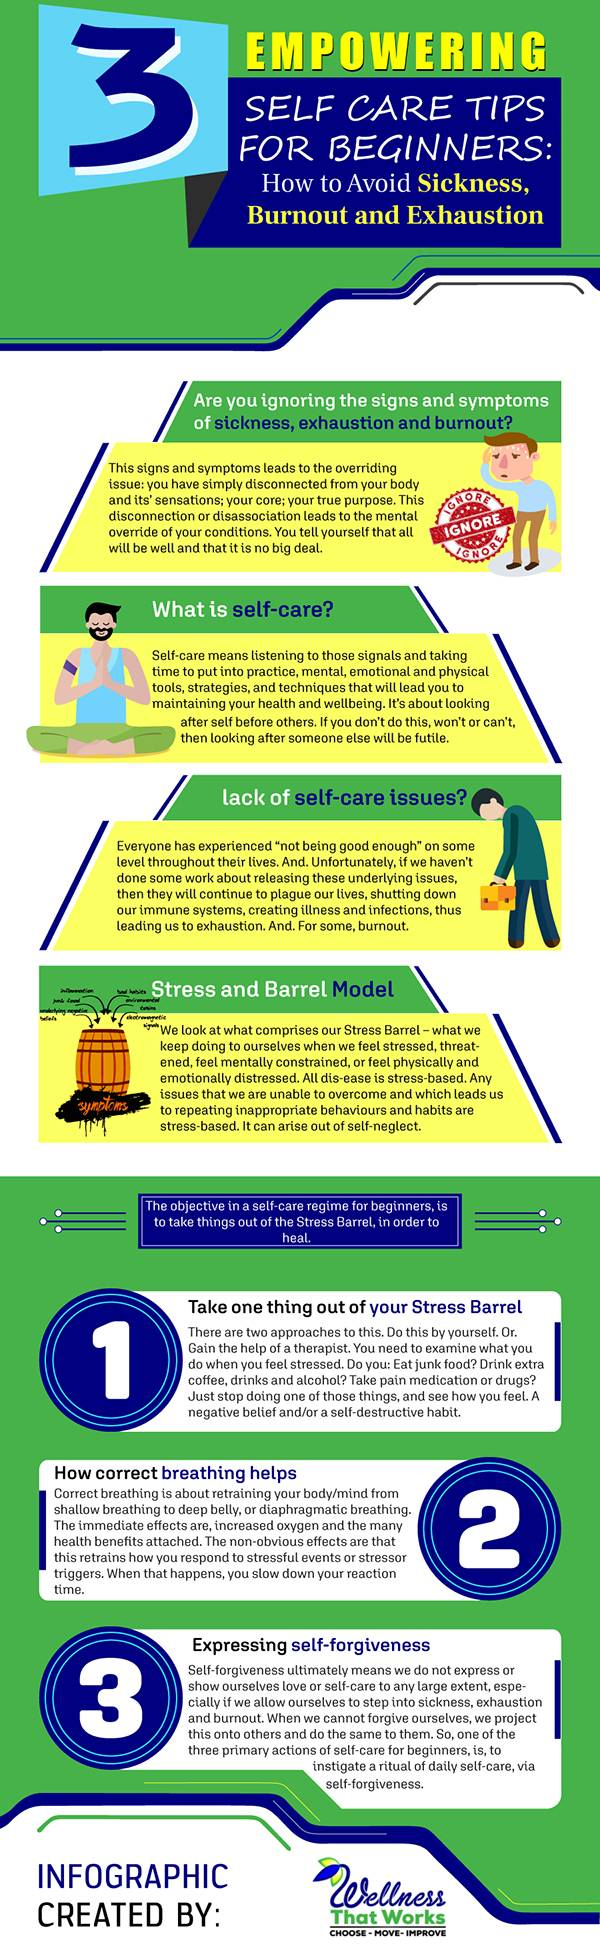 Infographic Summary of Simple Self Tips for Beginners